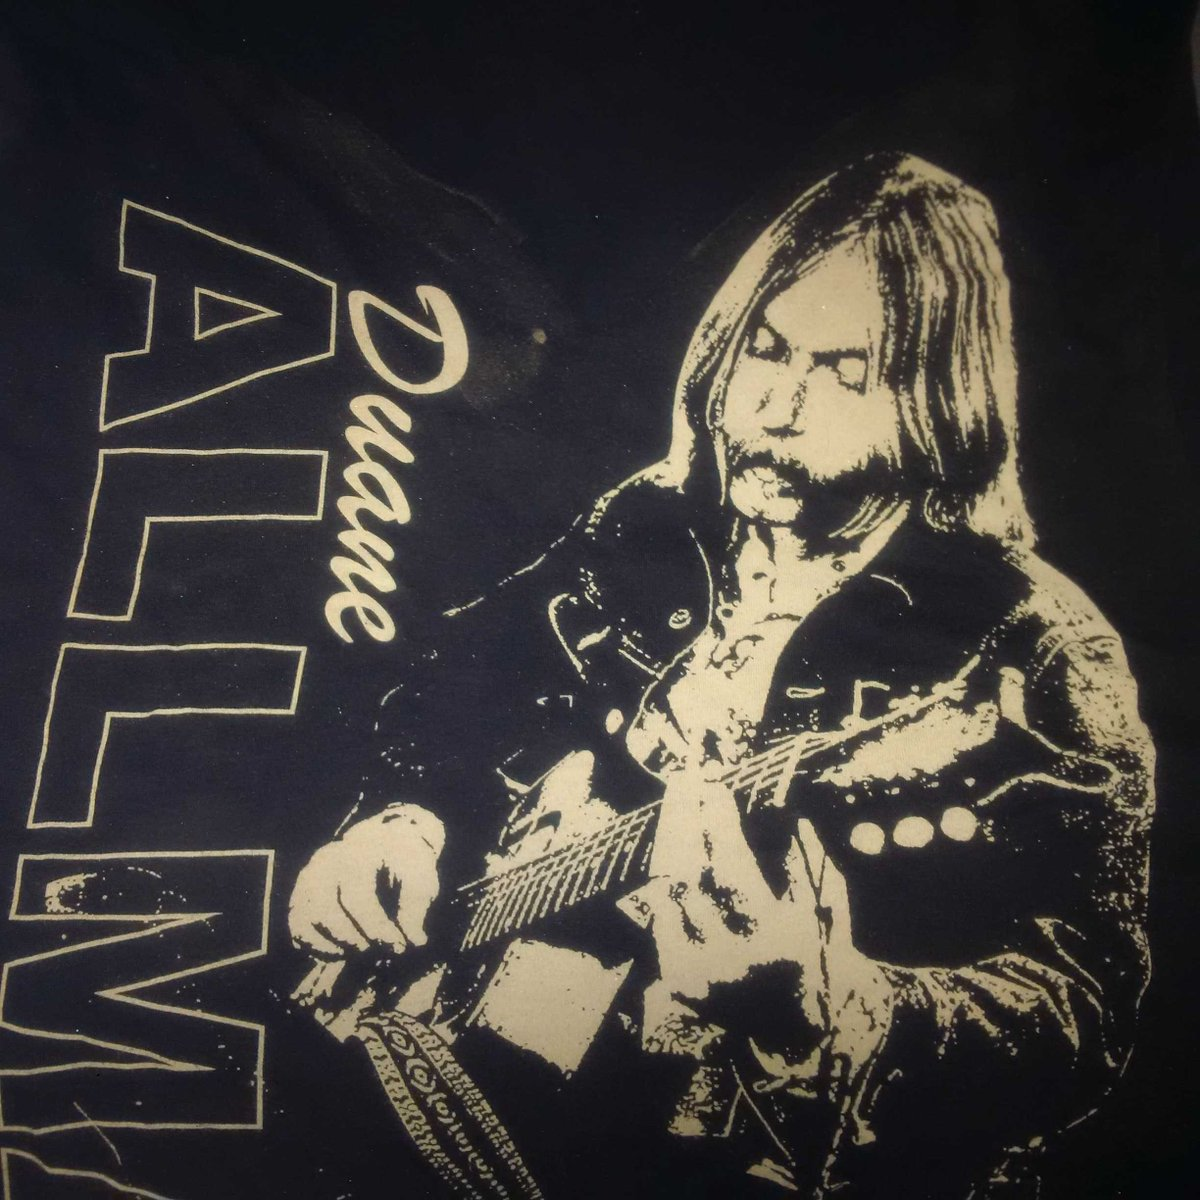 What a great night in Chico Ca!!!!! Best rock crowd in history! My shirt before the show. Now it's wet and in a wad